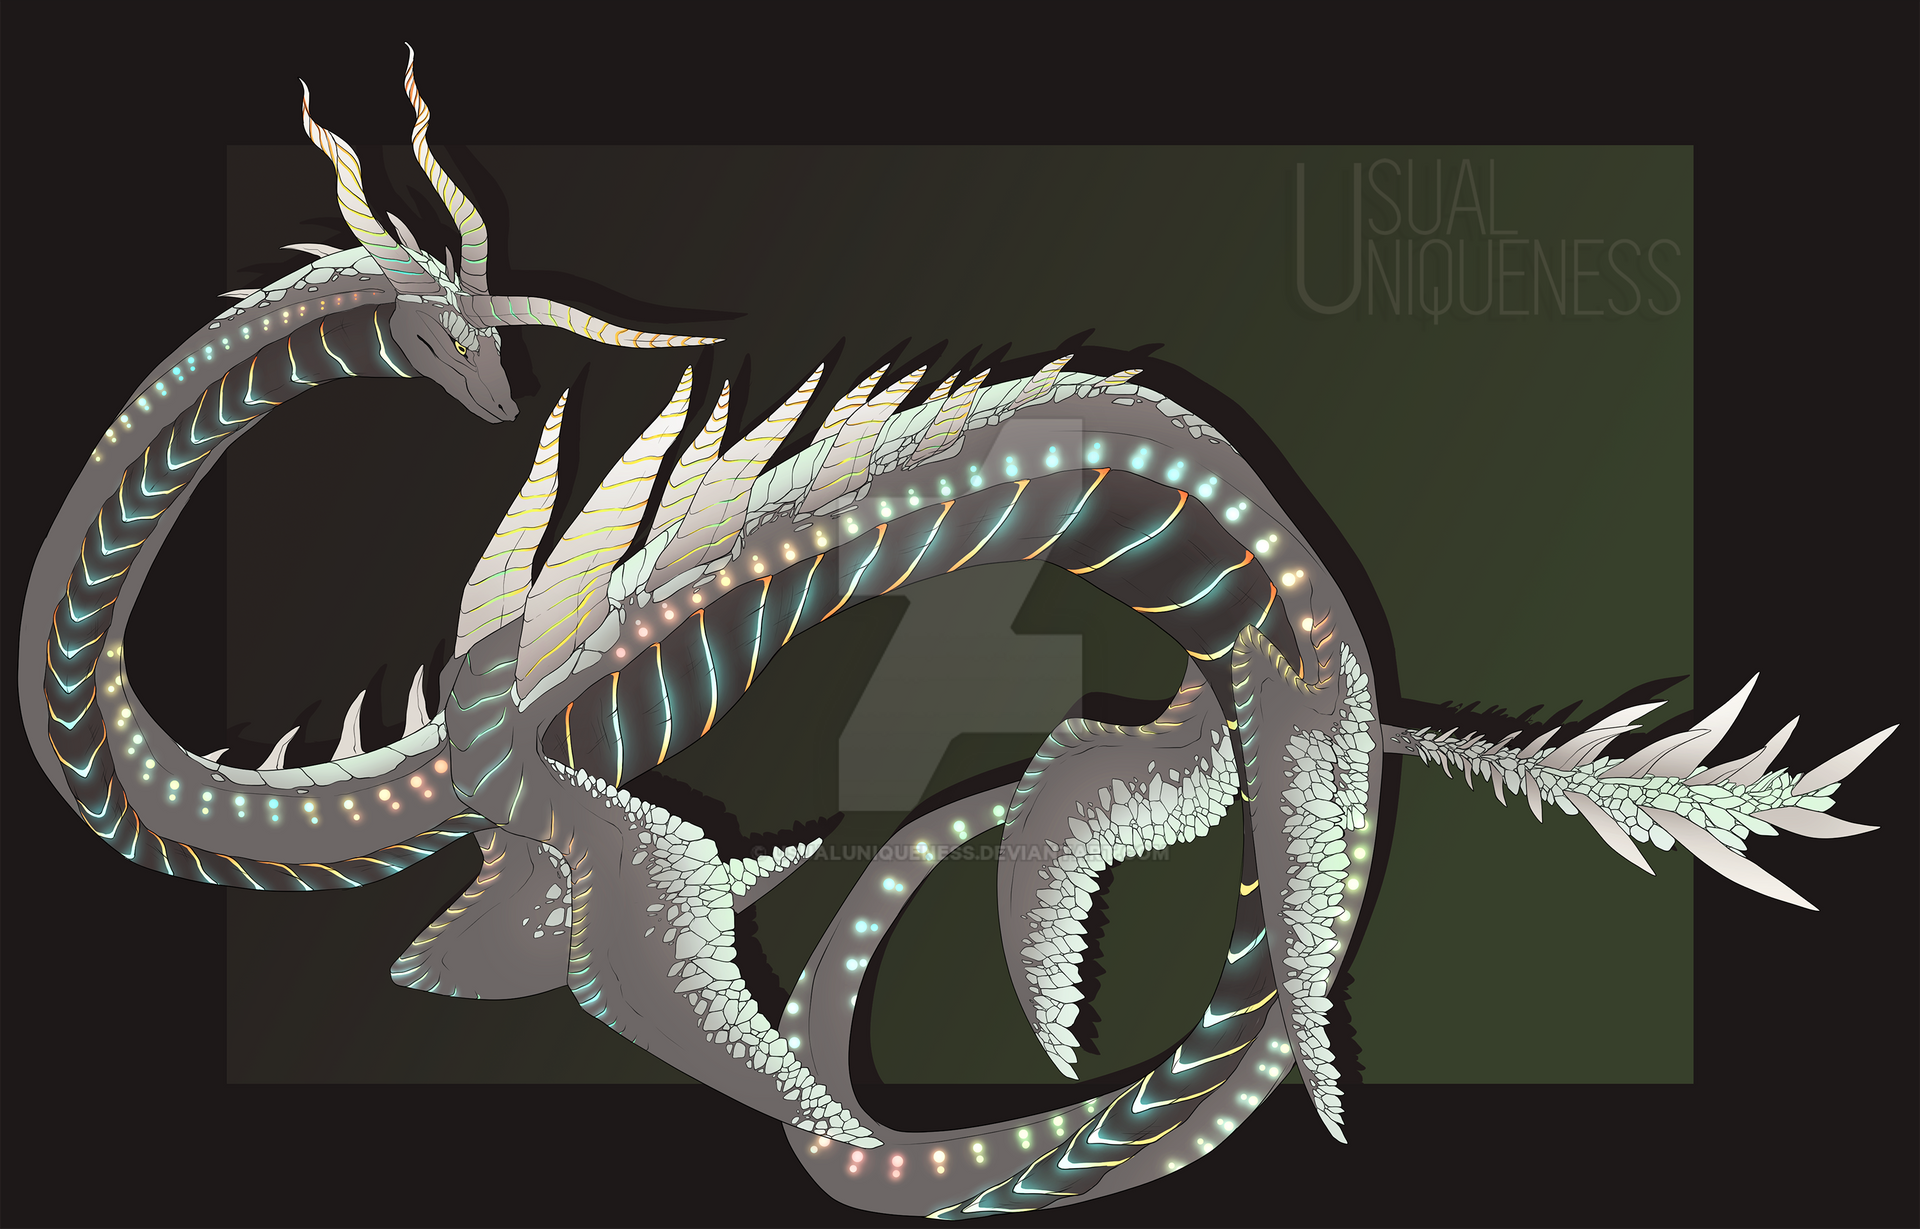 luminous_leviathan_by_usualuniqueness_de50yr6-fullview.png